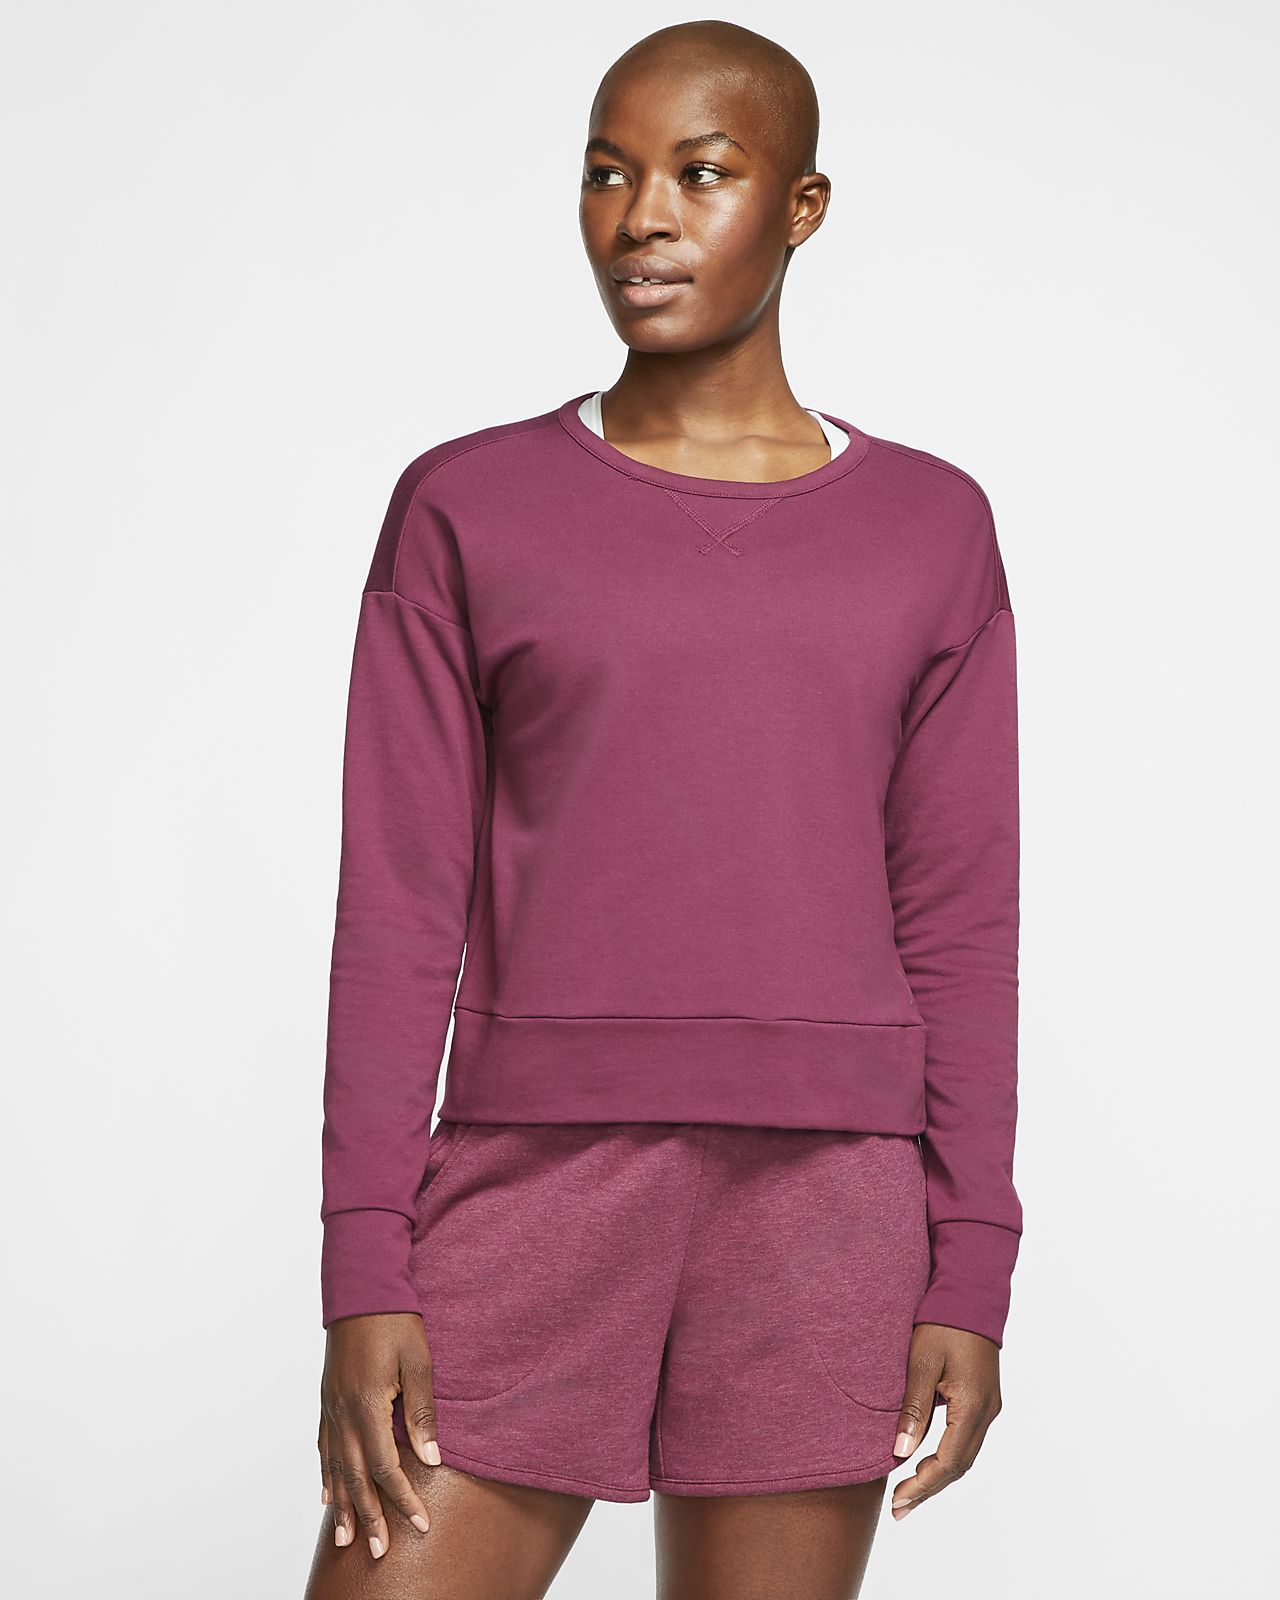 Nike Yoga Women's Long-Sleeve Top